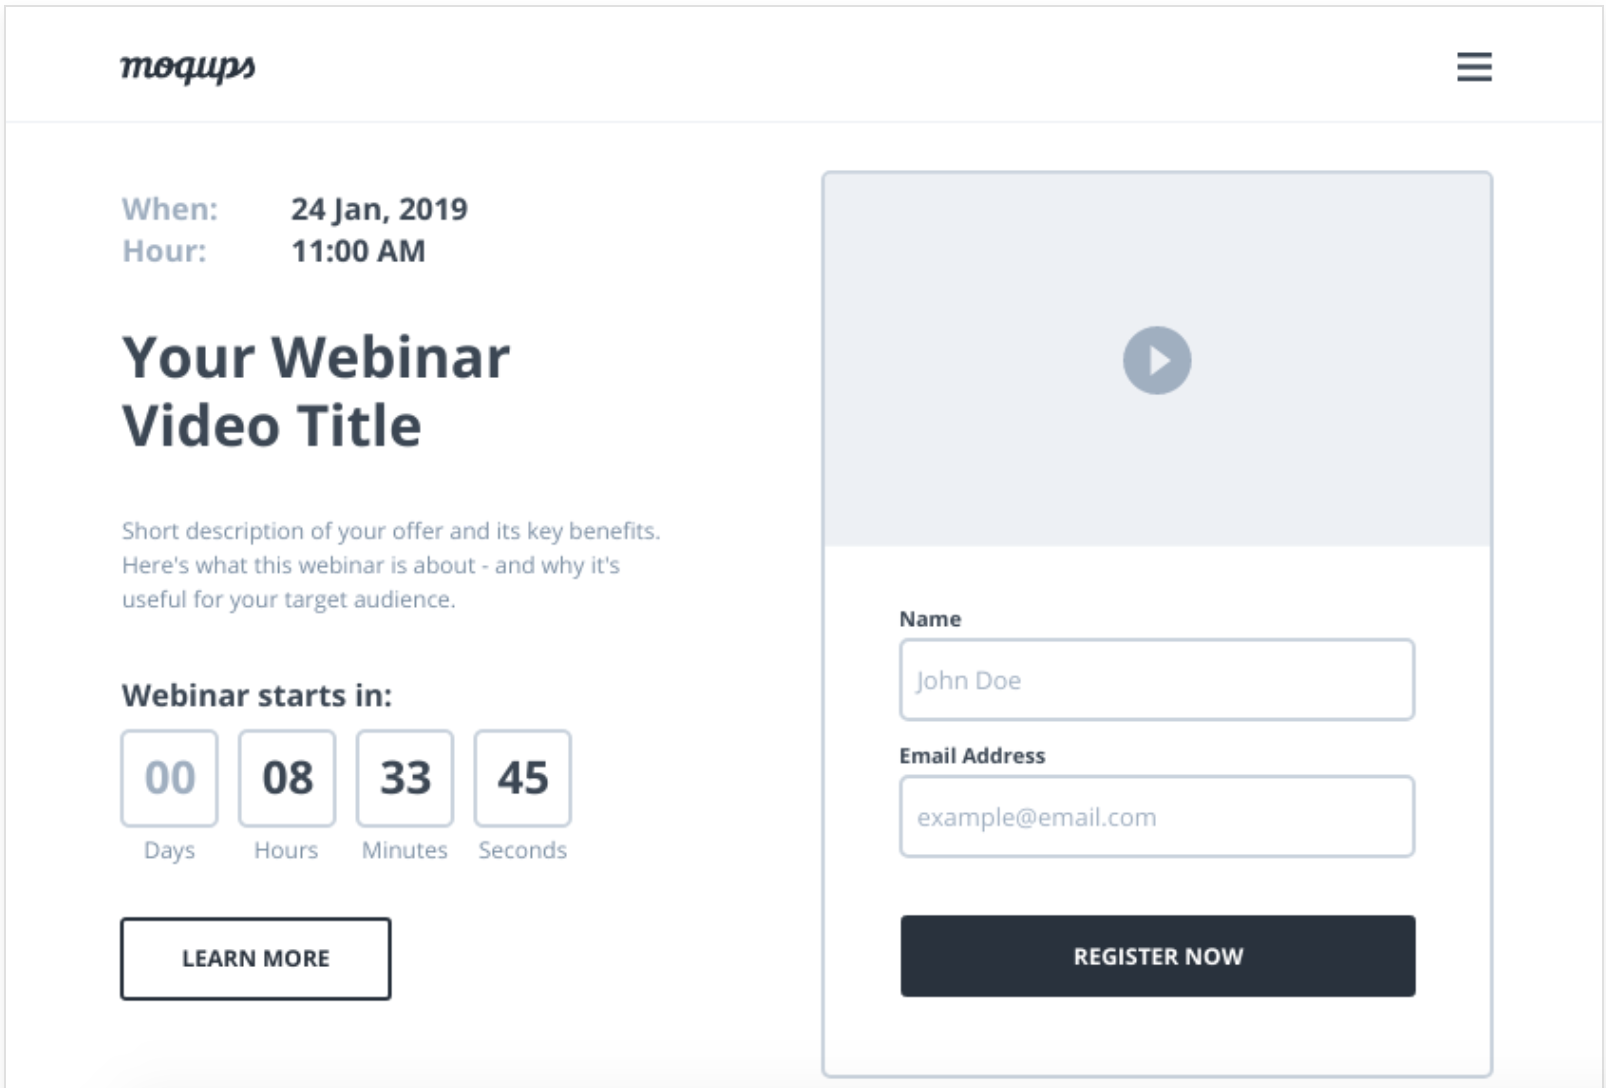 Webinar registration page template